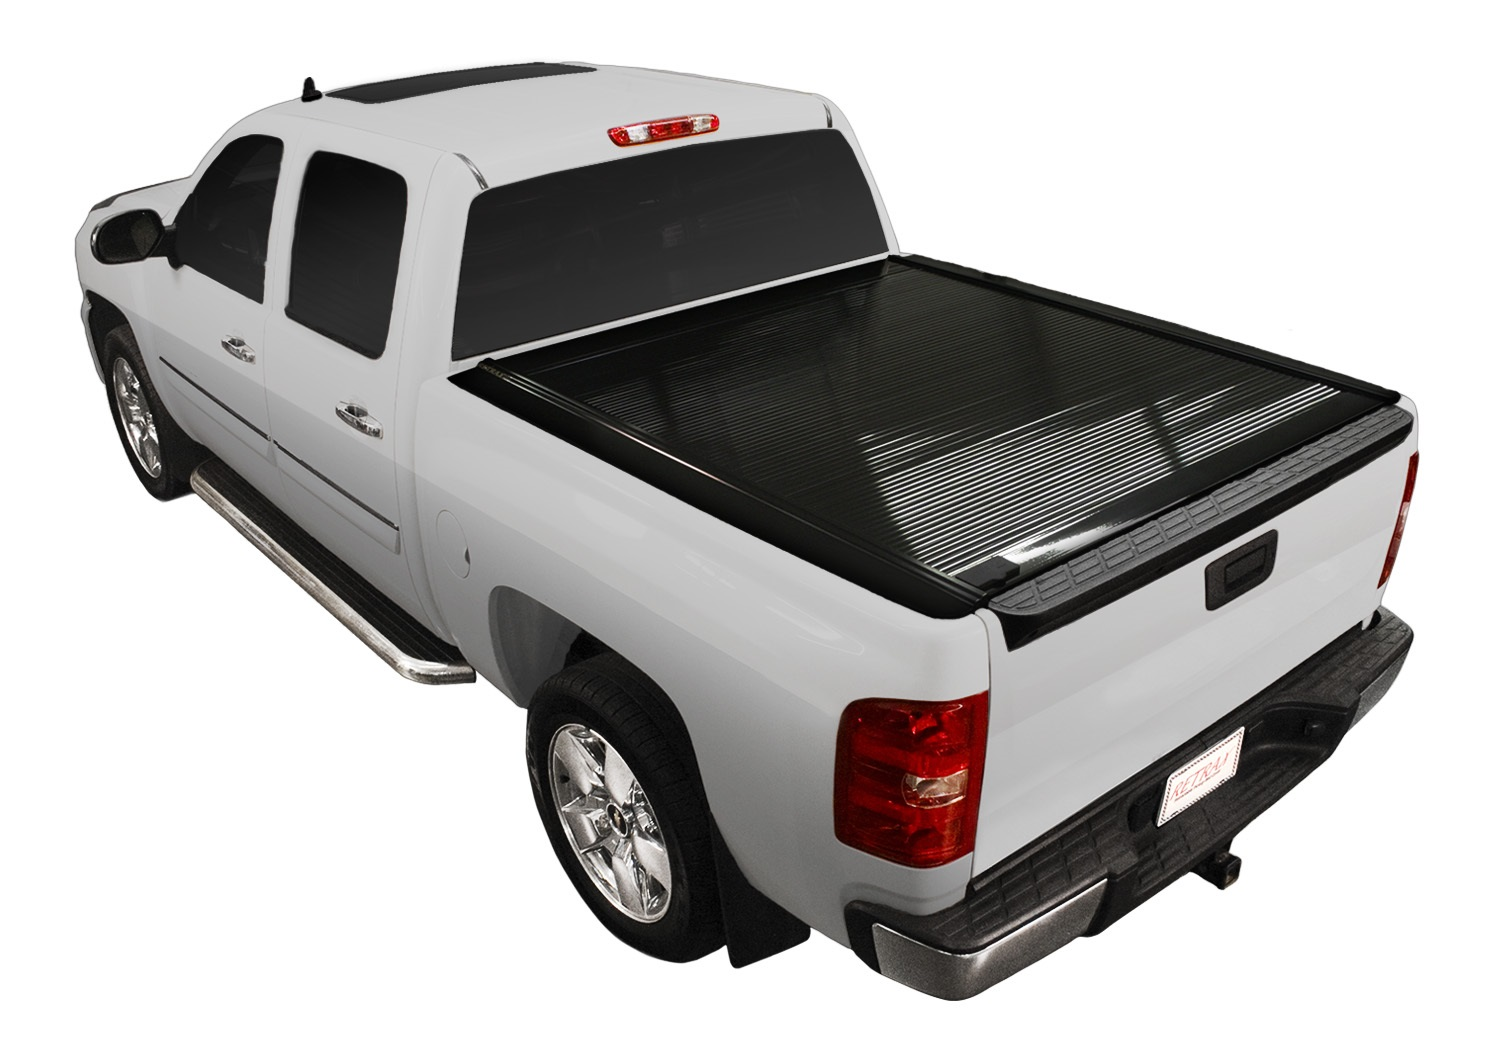 Retrax RetraxOne Tonneau Cover - Retrax 10454